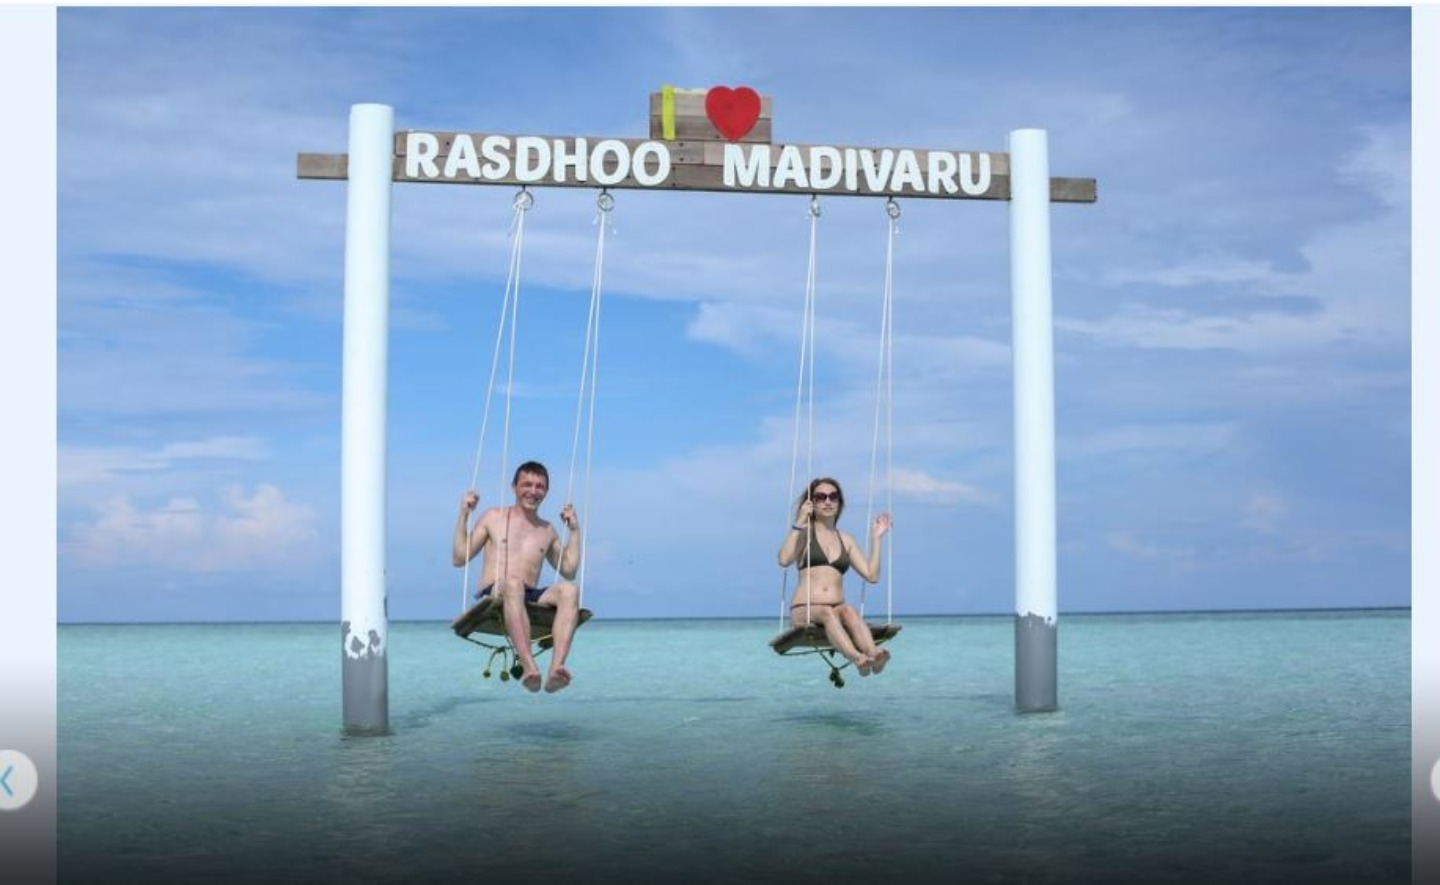 A person standing next to a body of water at Rasreef Maldives.